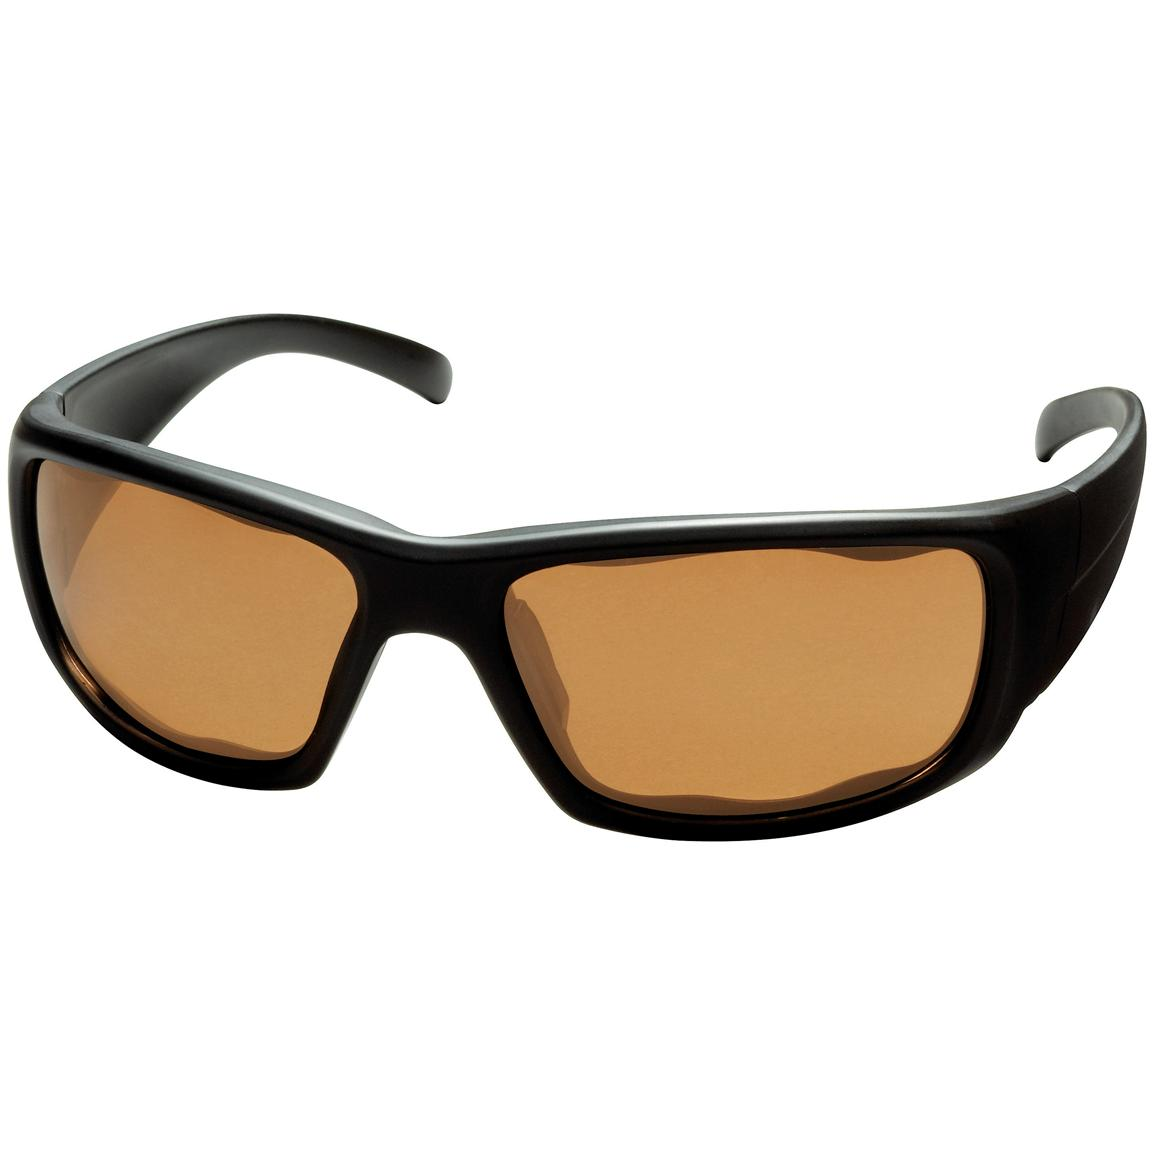 Men's Pepper's® Searchlight Polarized Sunglasses, Black / Copper Rose